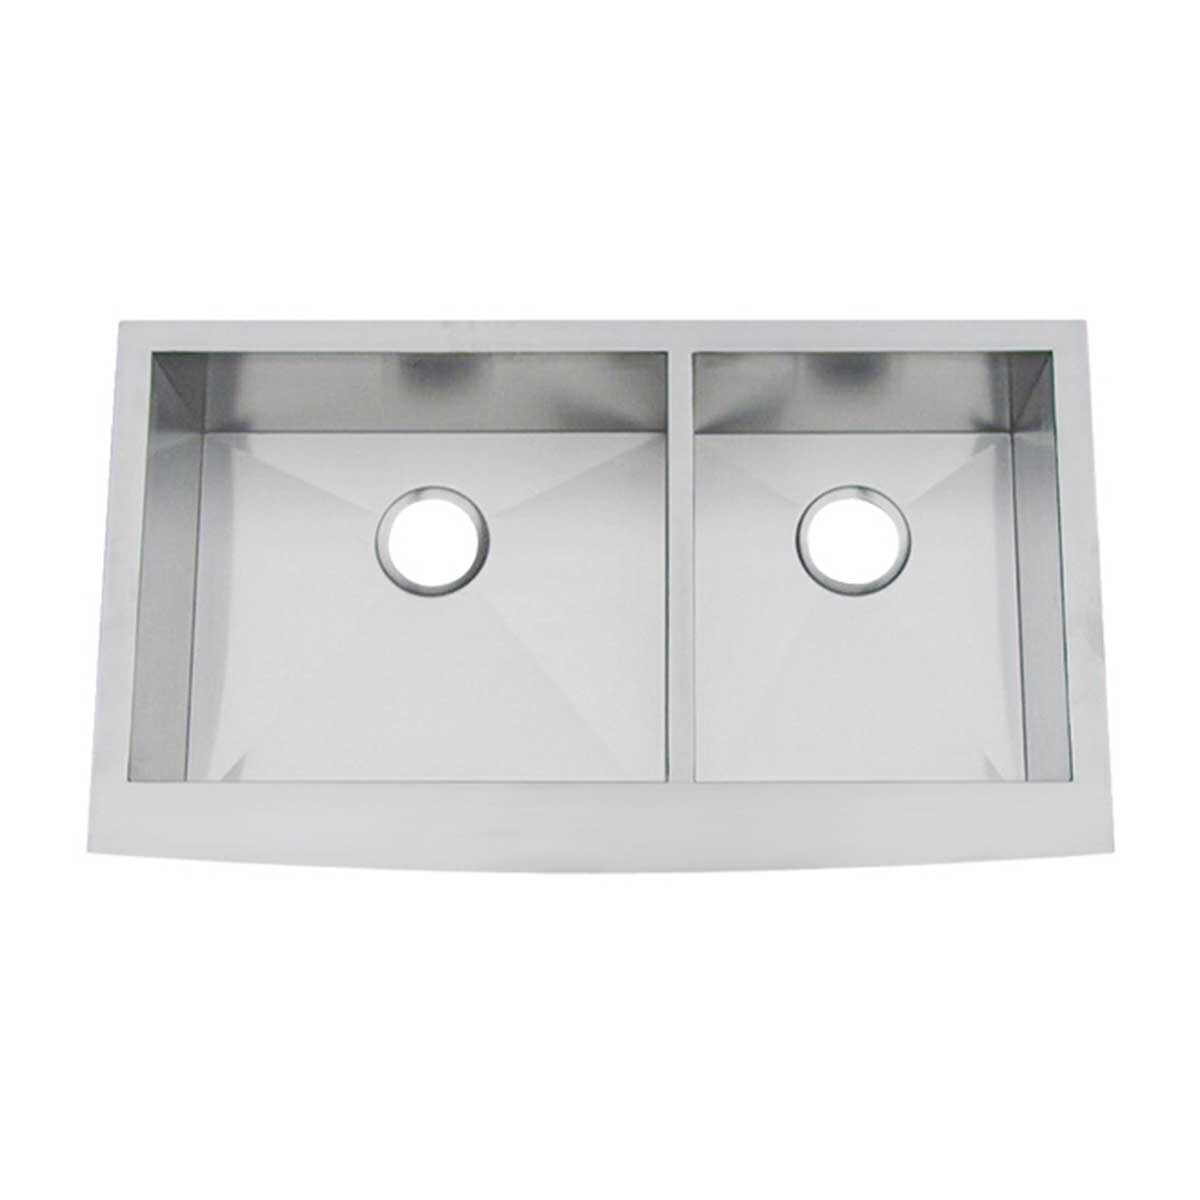 Artisan CPAZ3621-D1010 Chef Pro Stainless Steel Sink